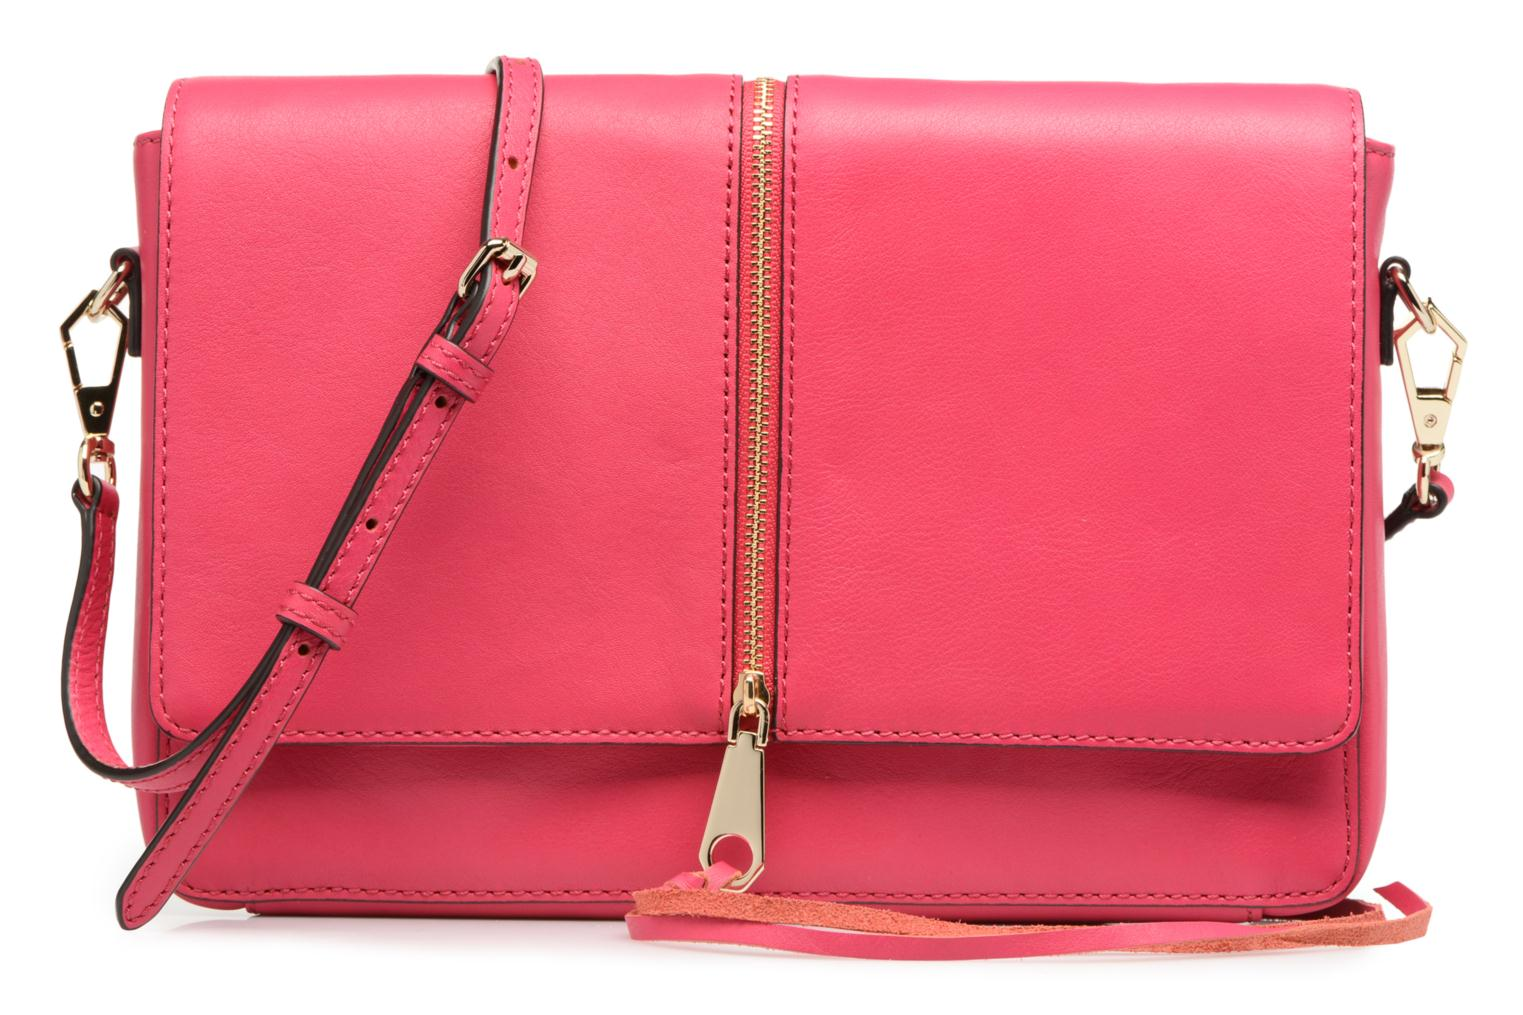 LEATHER HANDBAG HS15IFCC22 NINA ZIP CLUTCH ZEST